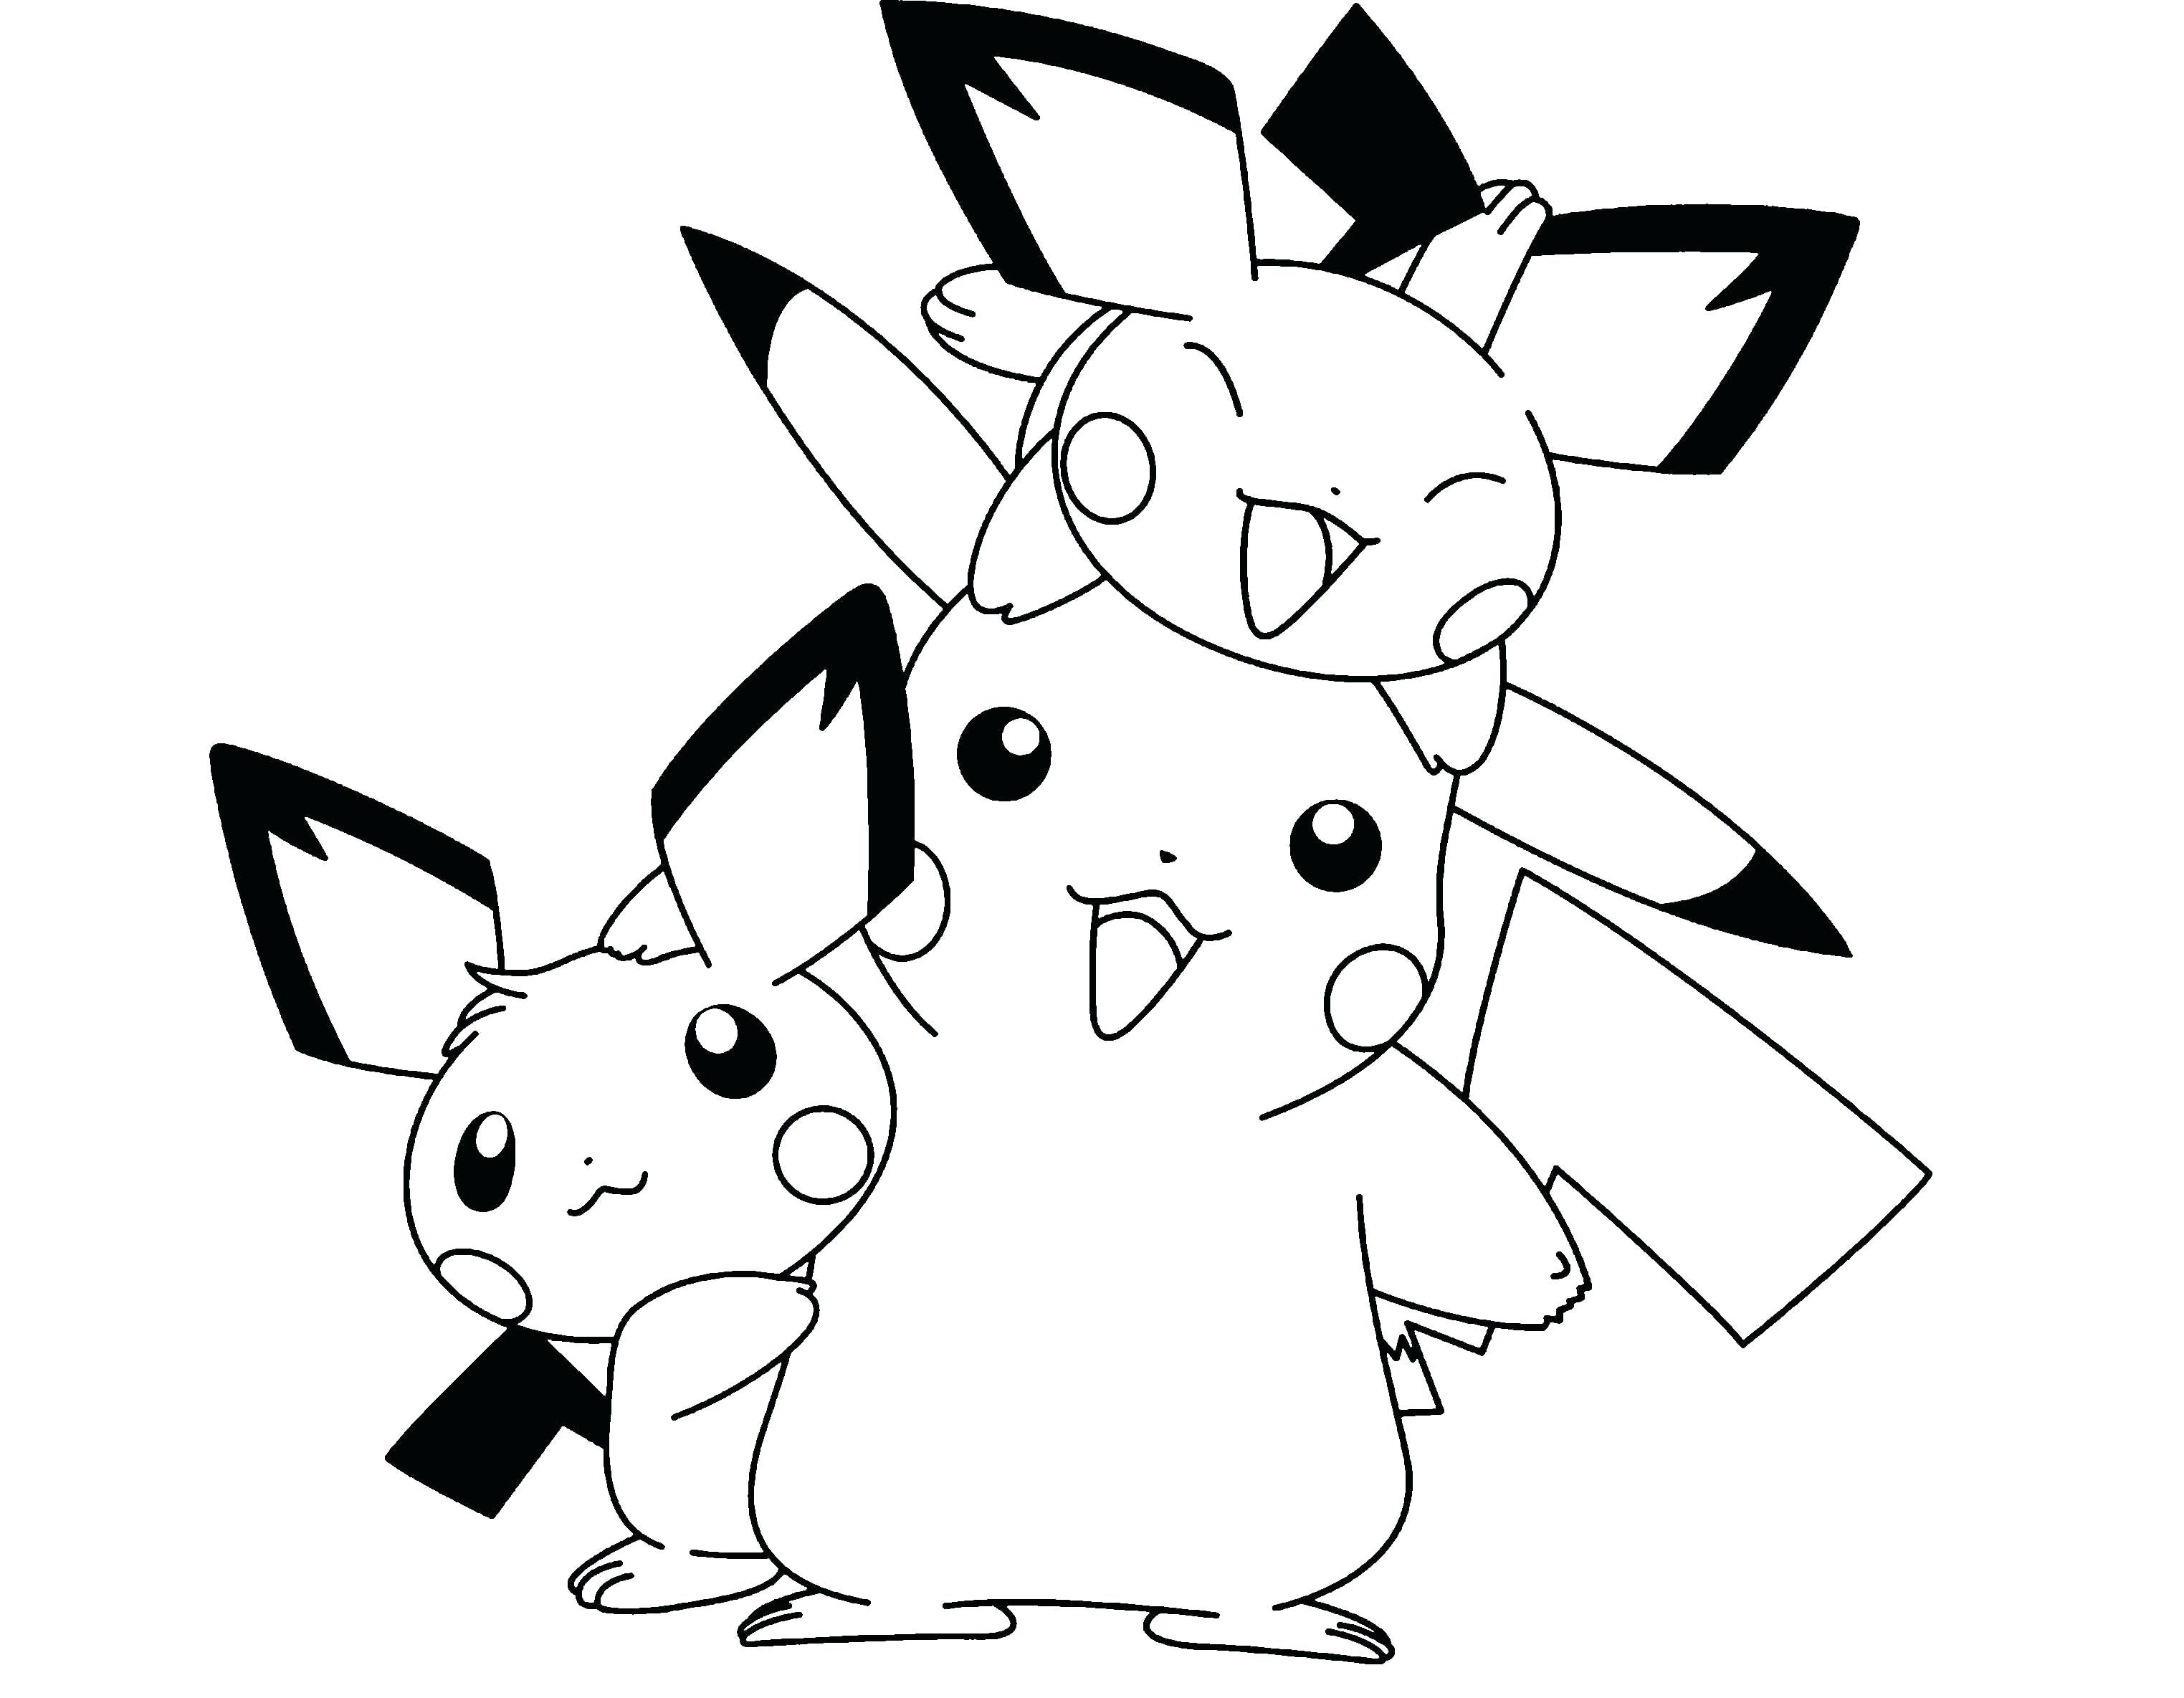 New Baby Pikachu Coloring Pages Download Coloring Coloring Pages Pikachu Pikachu Coloring Page Cute Coloring Pages Pokemon Coloring